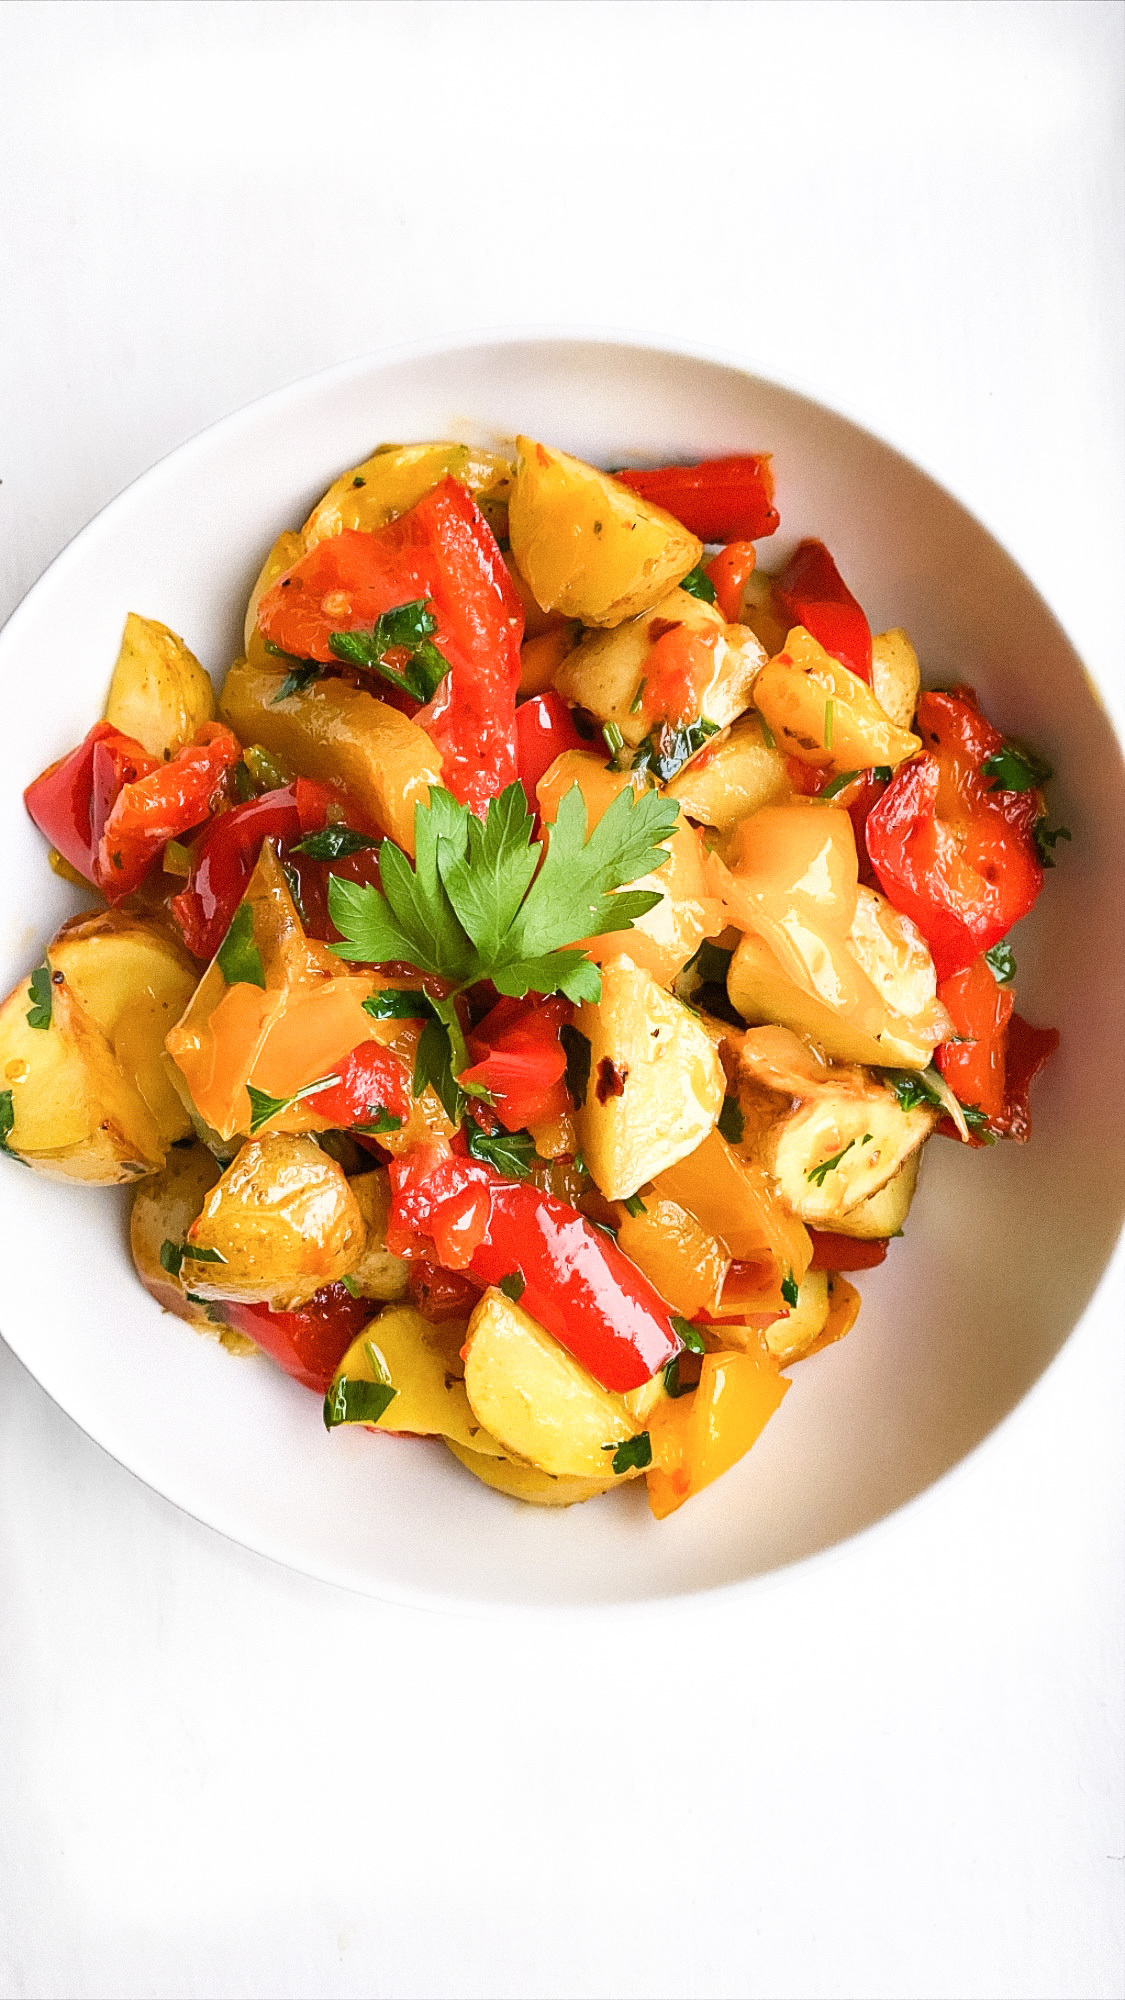 Roasted Potatoes with Peppers and Onions